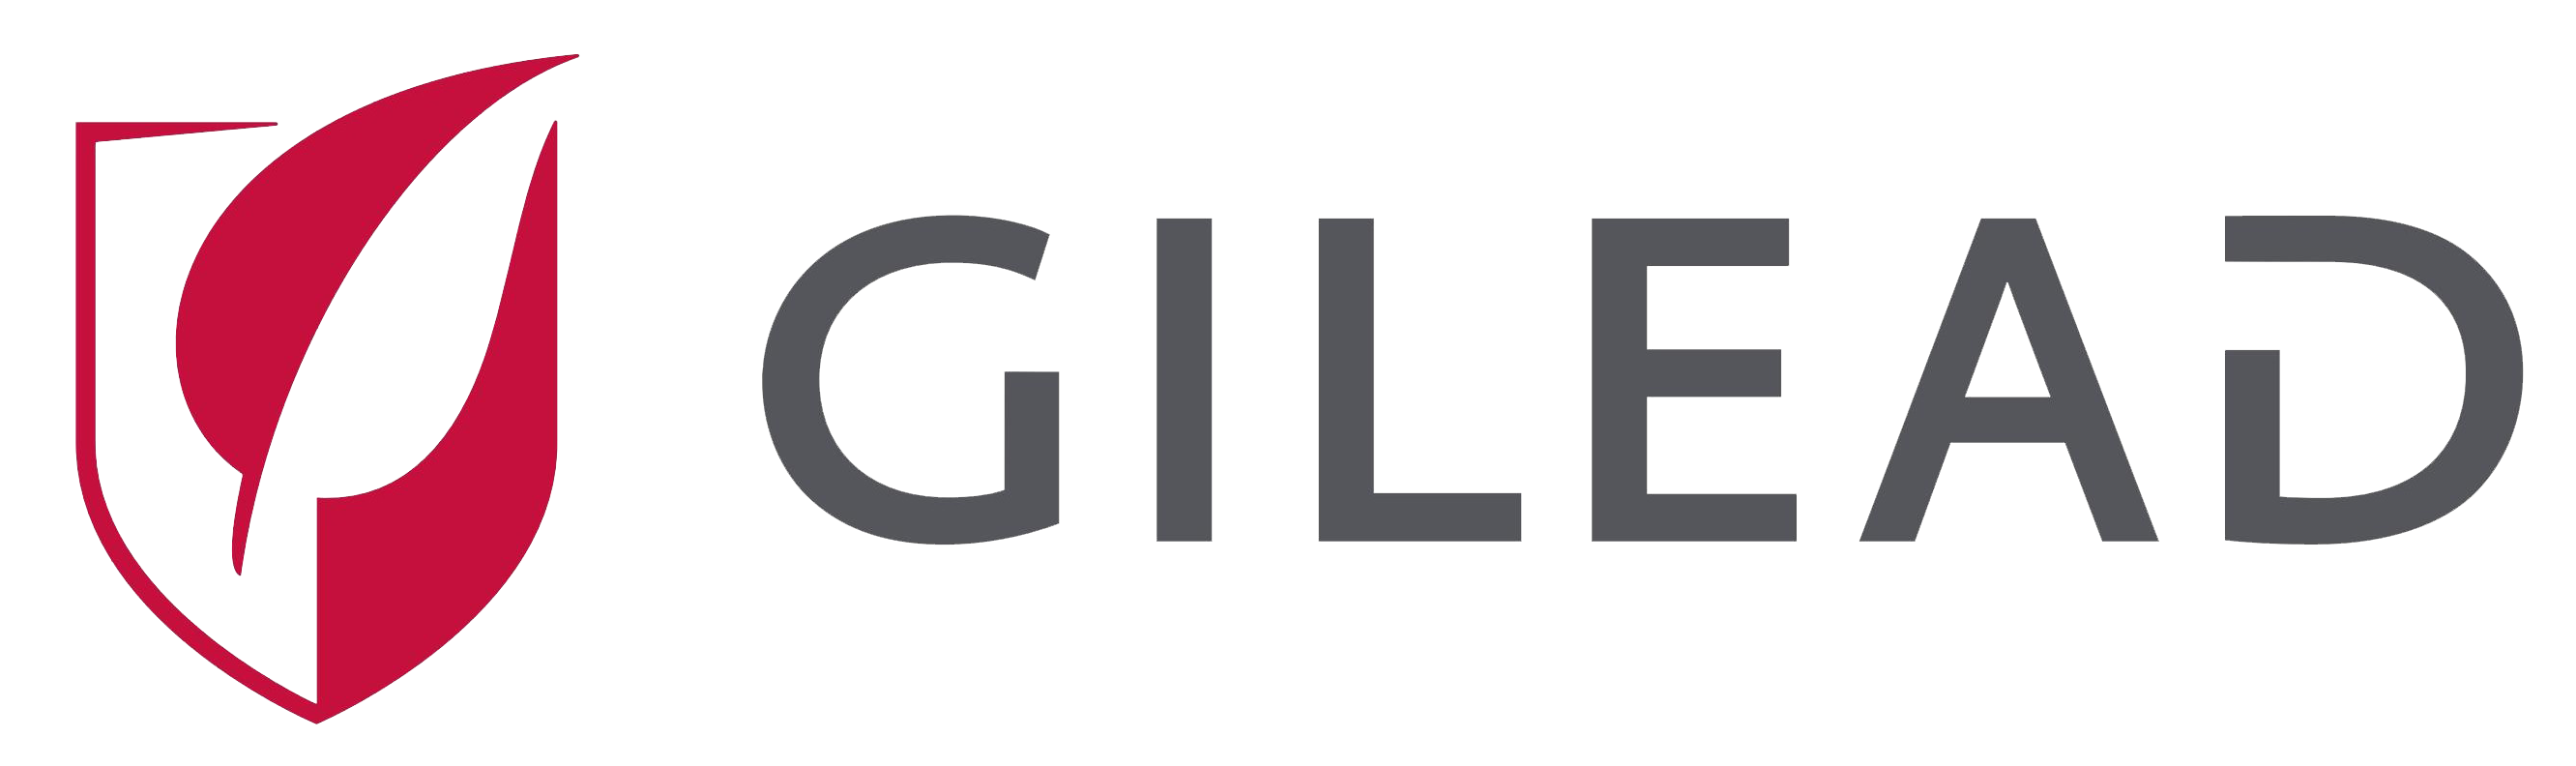 http://www.innocate.dk/wp-content/uploads/2018/09/PNGPIX-COM-Gilead-Logo-PNG-Transparent.png